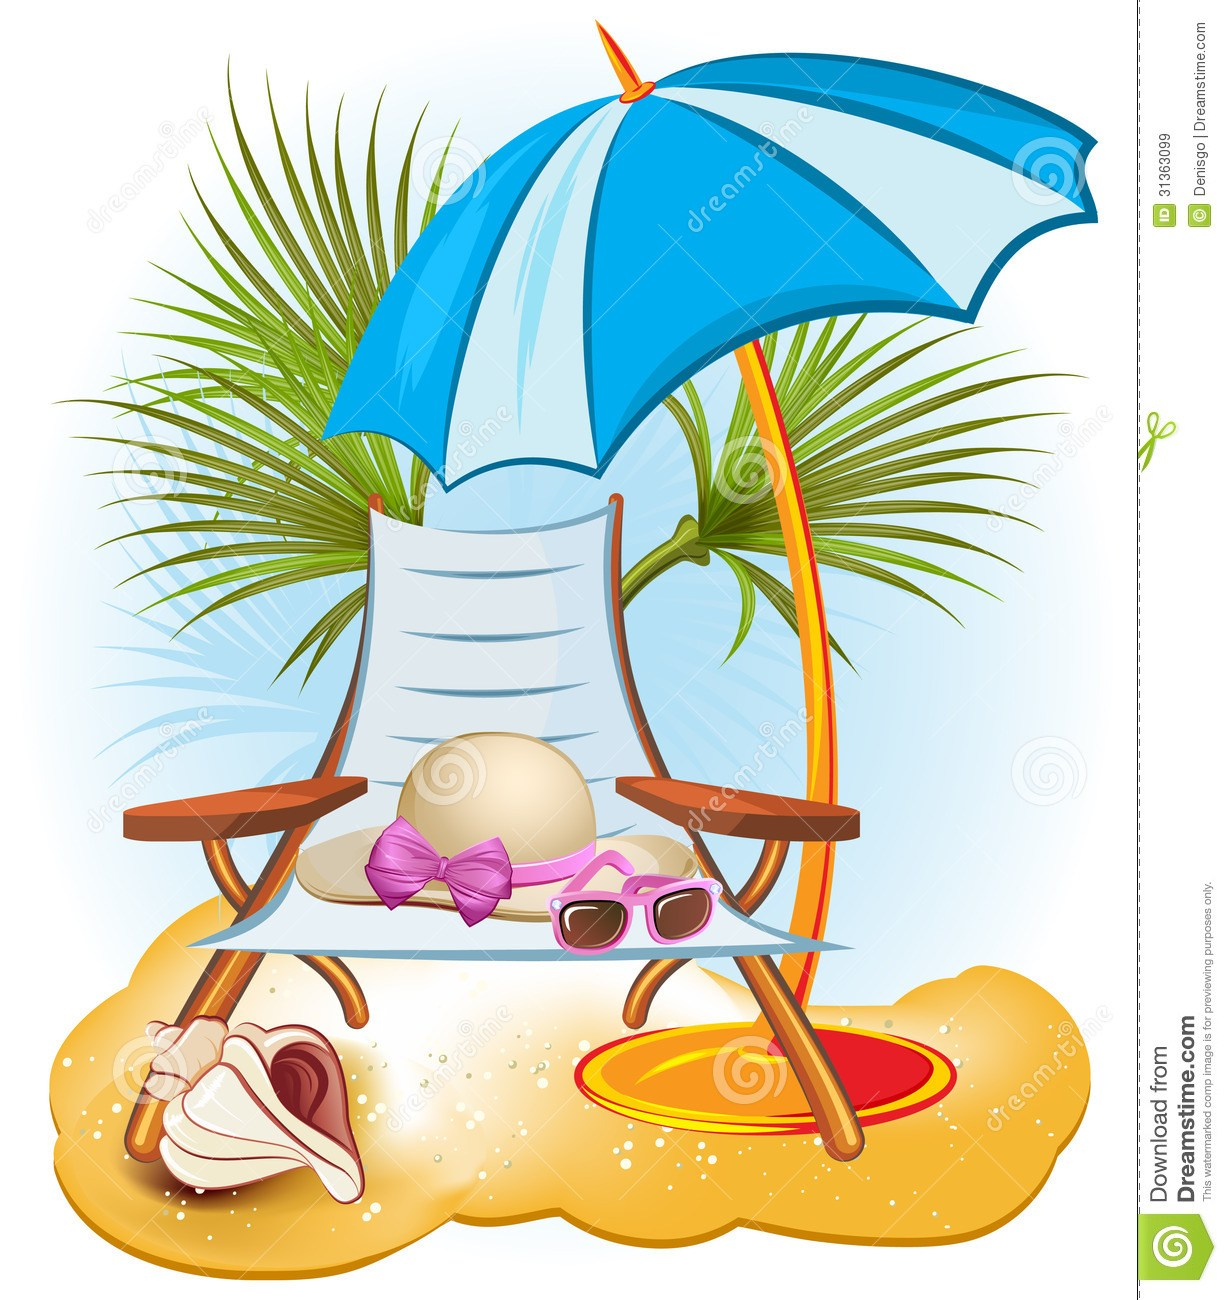 Vacances images clipart image free stock Vacances dété clipart 7 » Clipart Portal image free stock